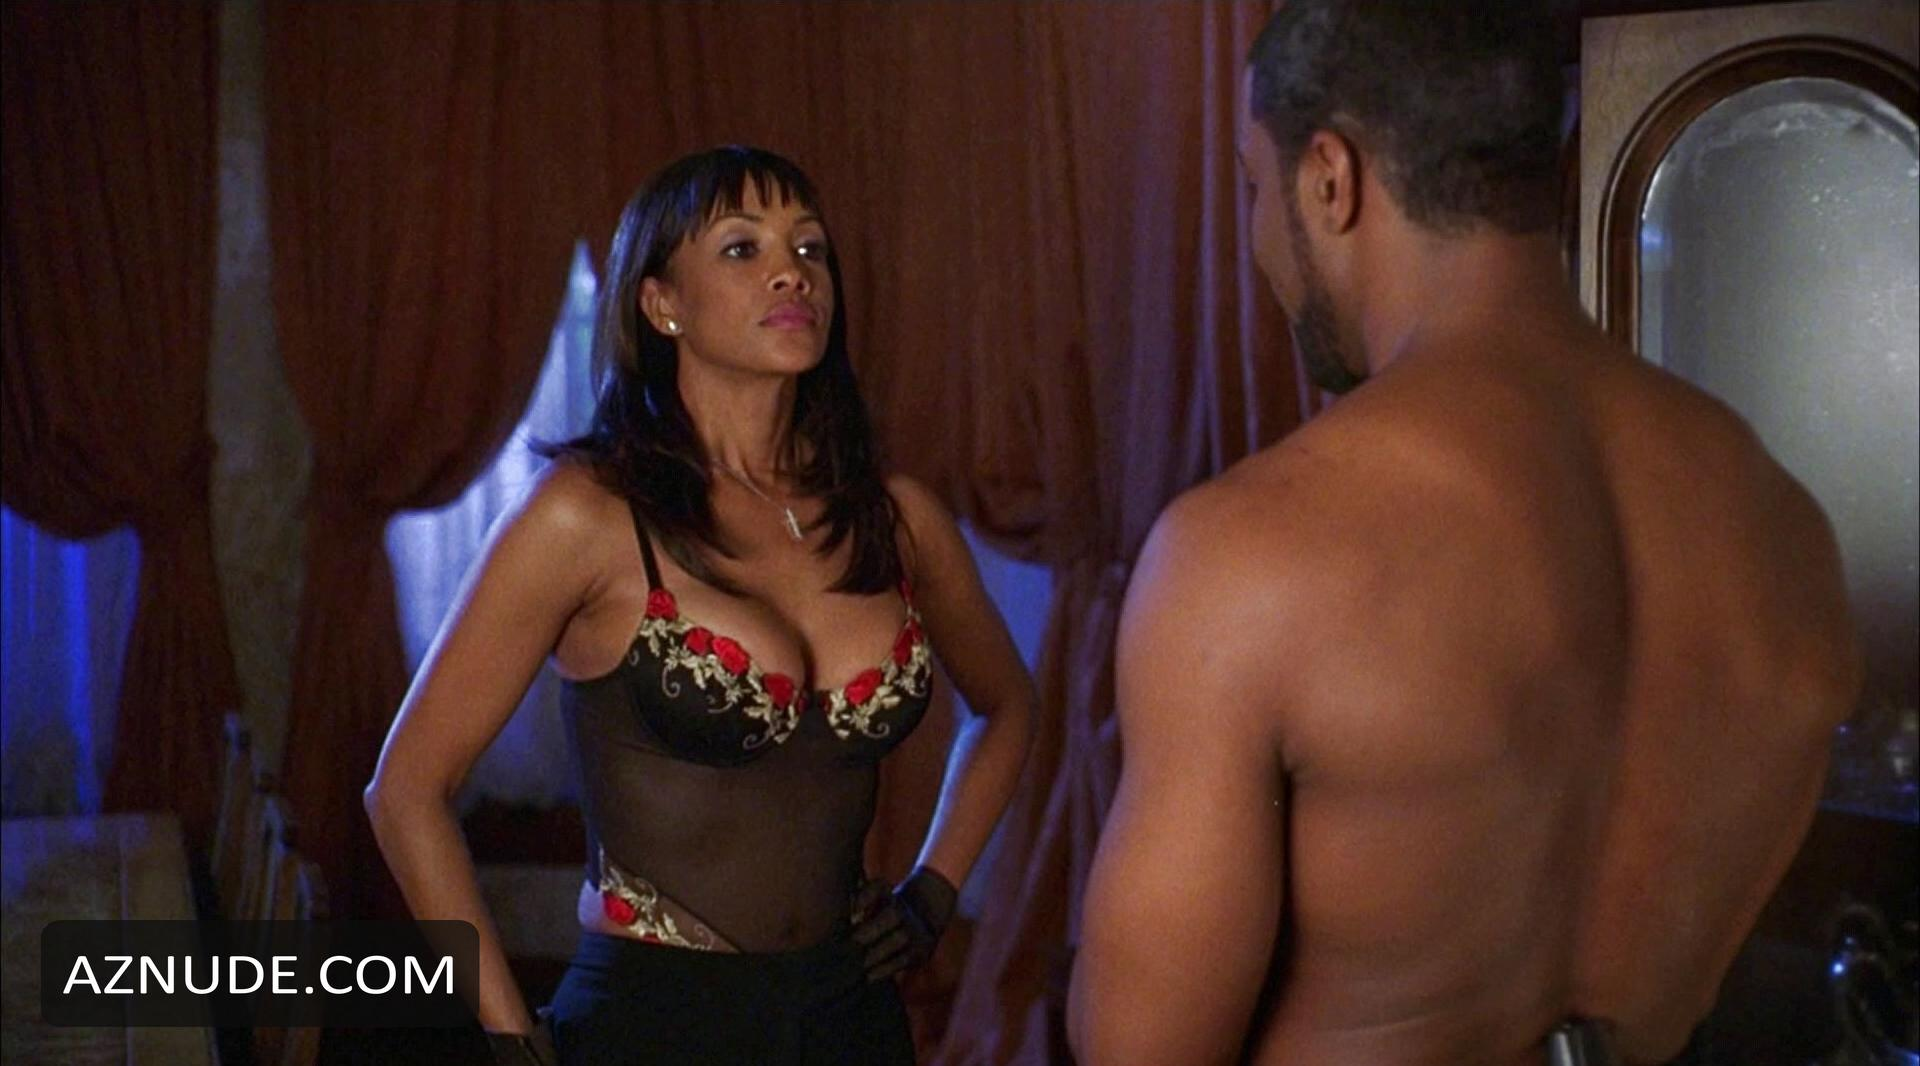 Watch uncensored vivica fox sex tape